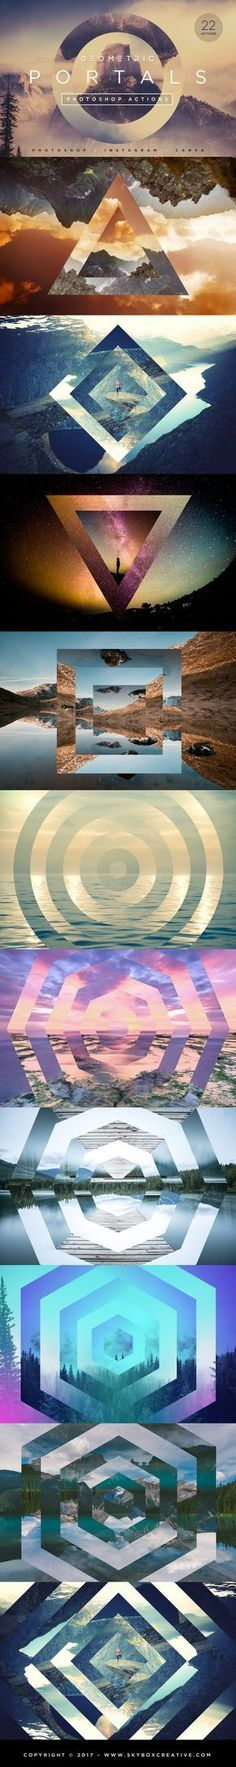 Geometric Portals Photoshop Actions includes 44 Photoshop Actions (Including our 22 Gradient Overlay BONUS Effects)!! Value $29 – NOW ONLY $15! Create stunning, interdimensional effects with this brand new set of Photoshop Actions! With just a single click, you can add depth, contrast and a powerful unique look to your design projects.